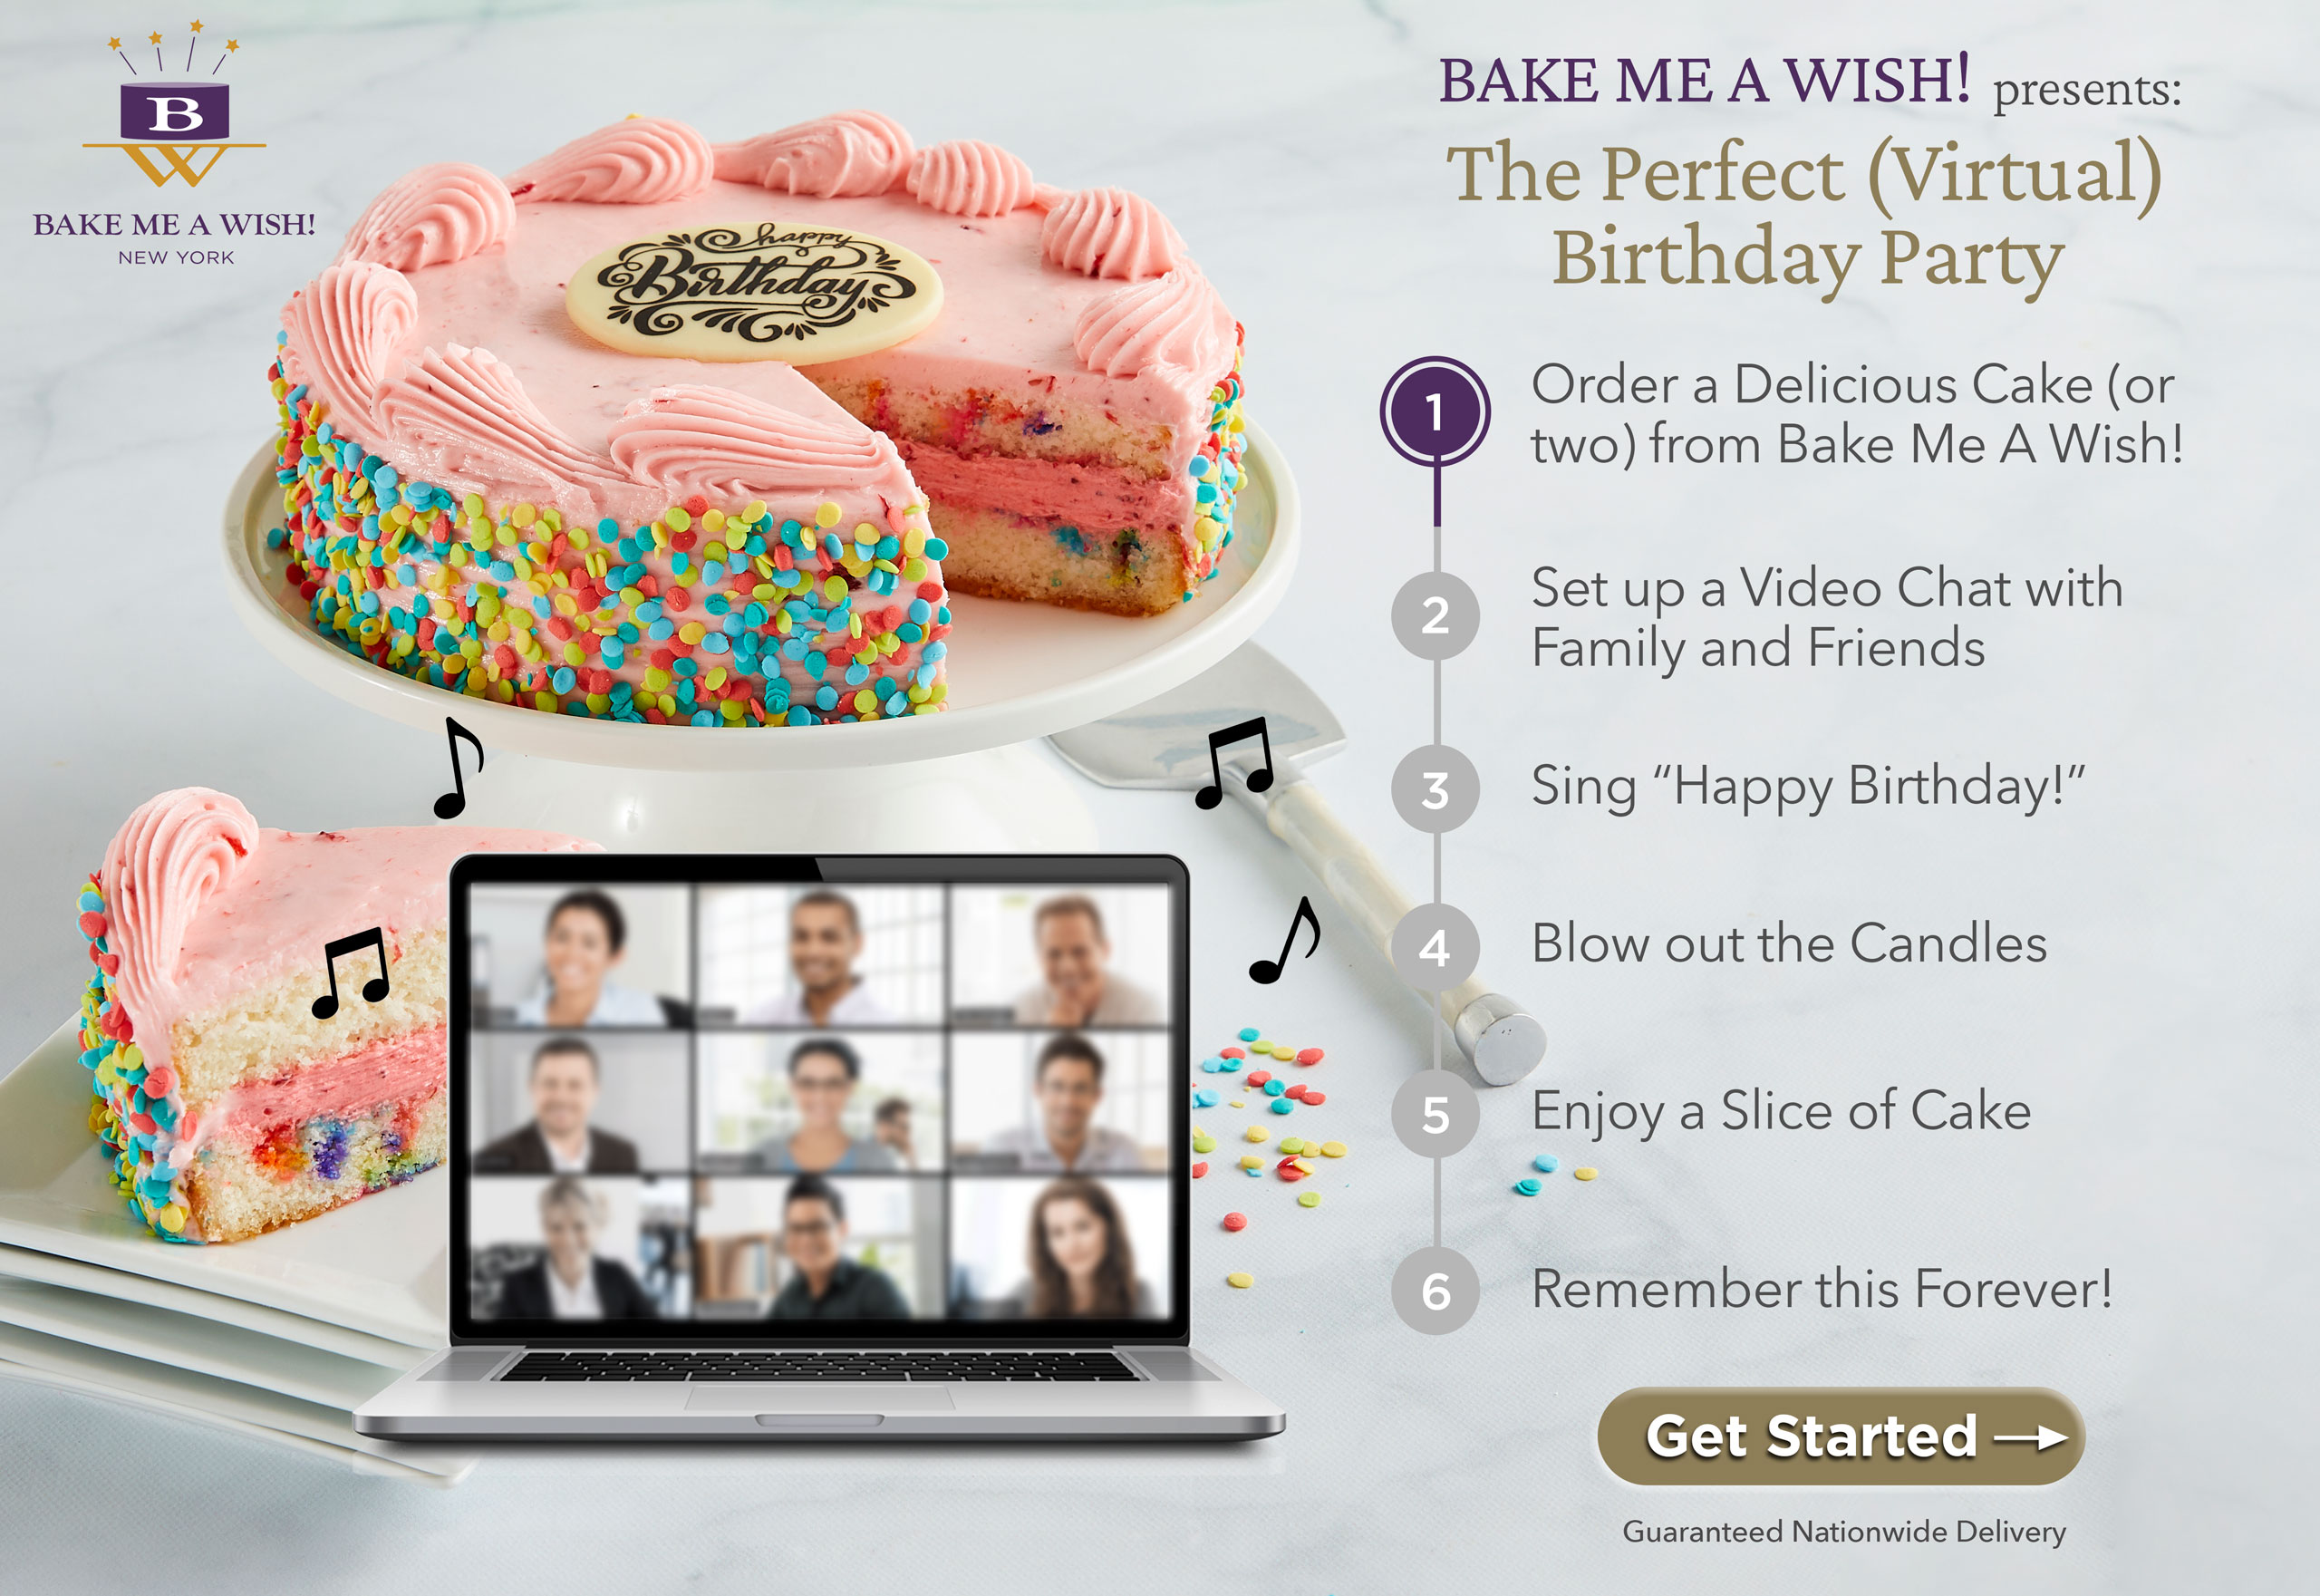 BAKE ME A WISH: Bake Me A Wish! gourmet cakes and bakery gifts are delivered overnight, nationwide